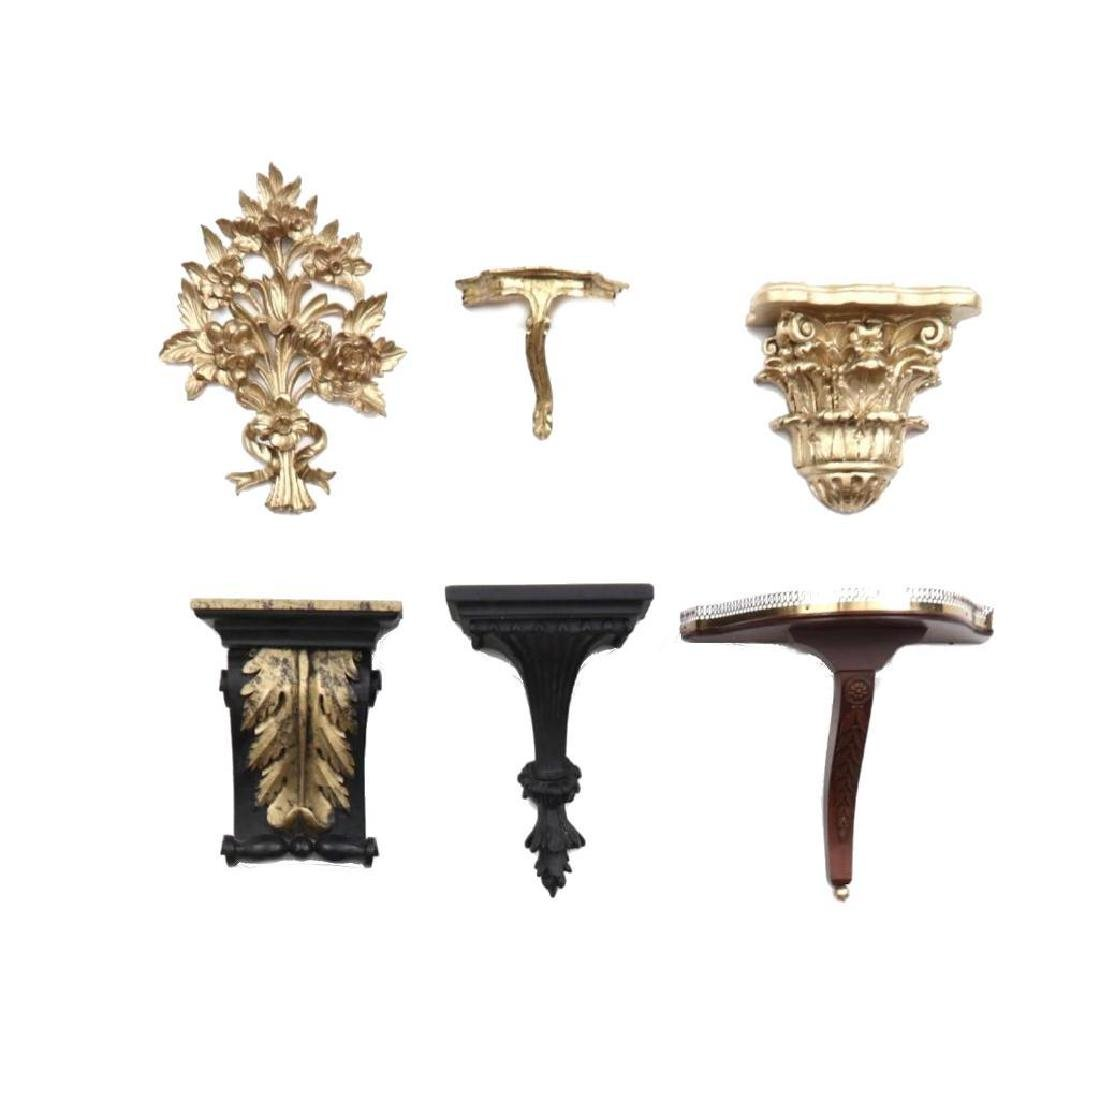 Group of Architectural Elements